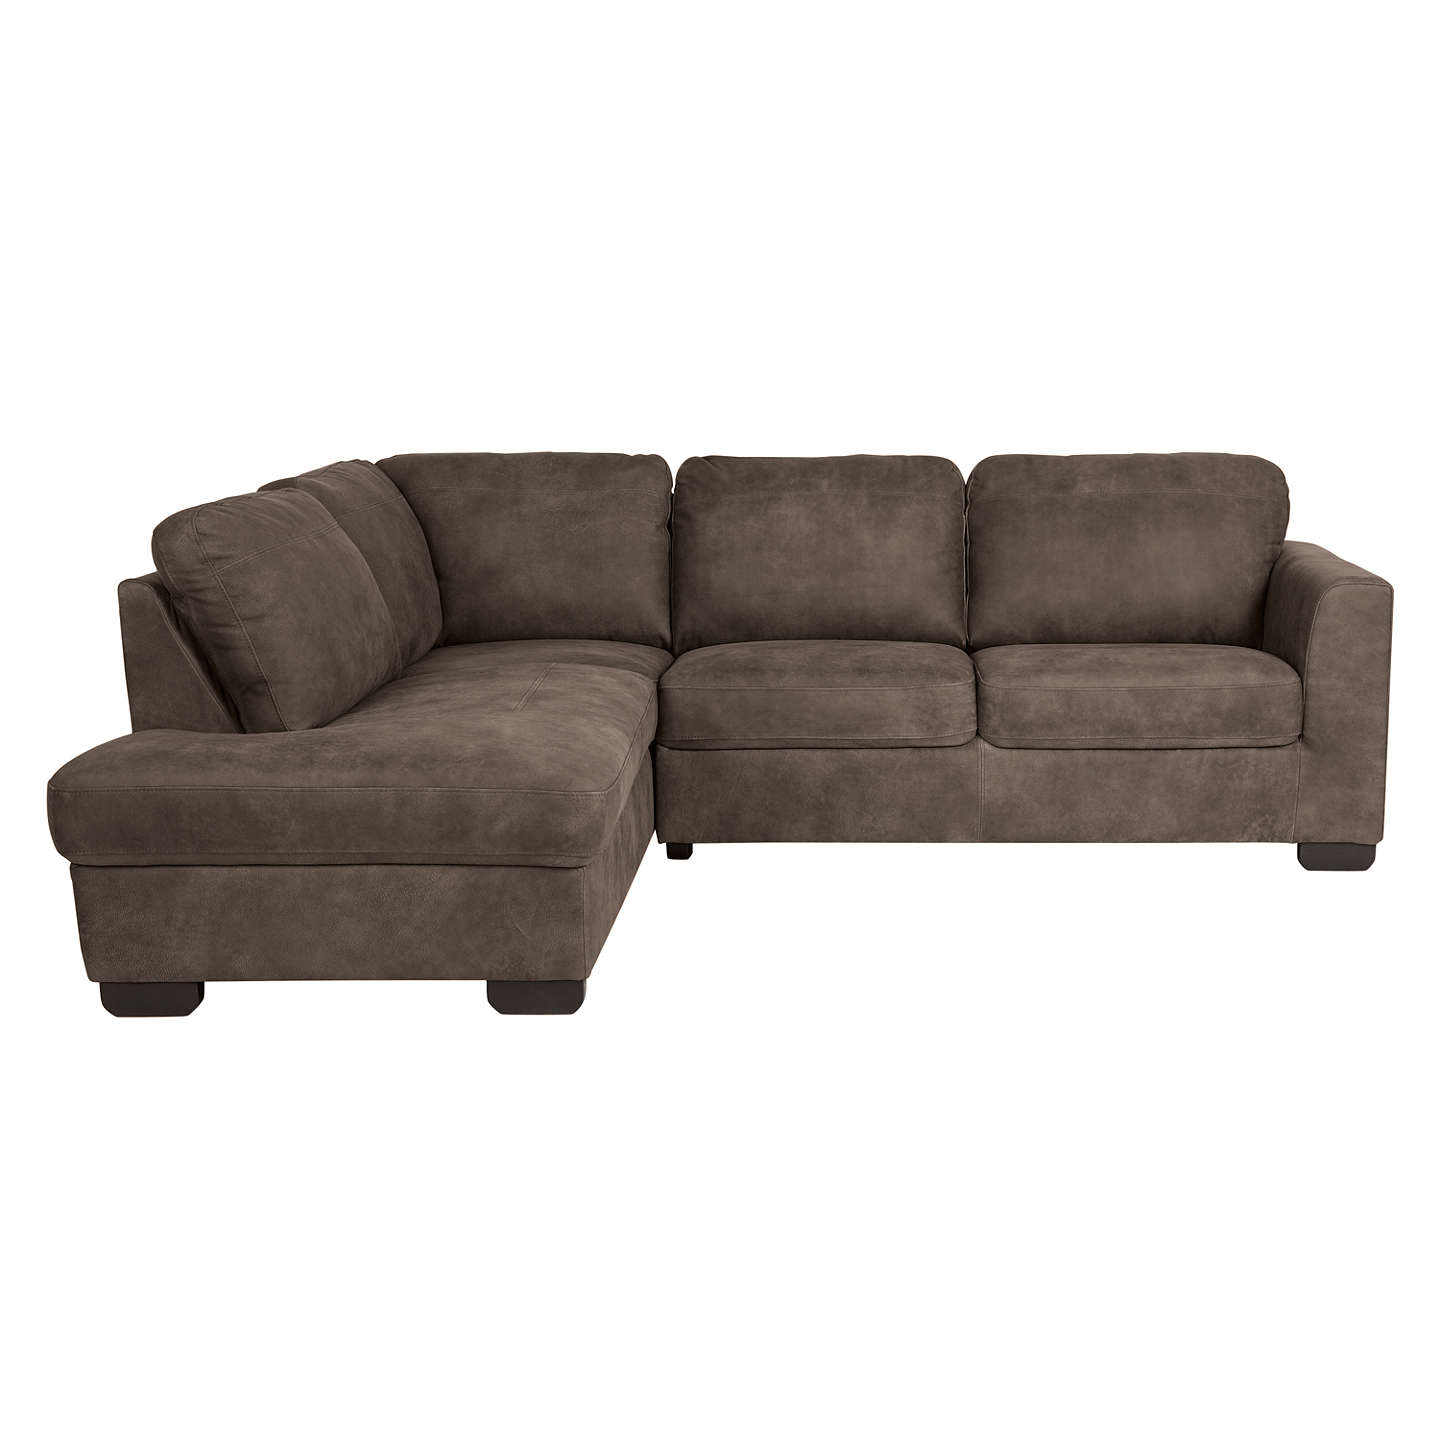 John Lewis Cooper Corner Sofa: John Lewis Cooper LHF Leather Corner Chaise End Sofa With